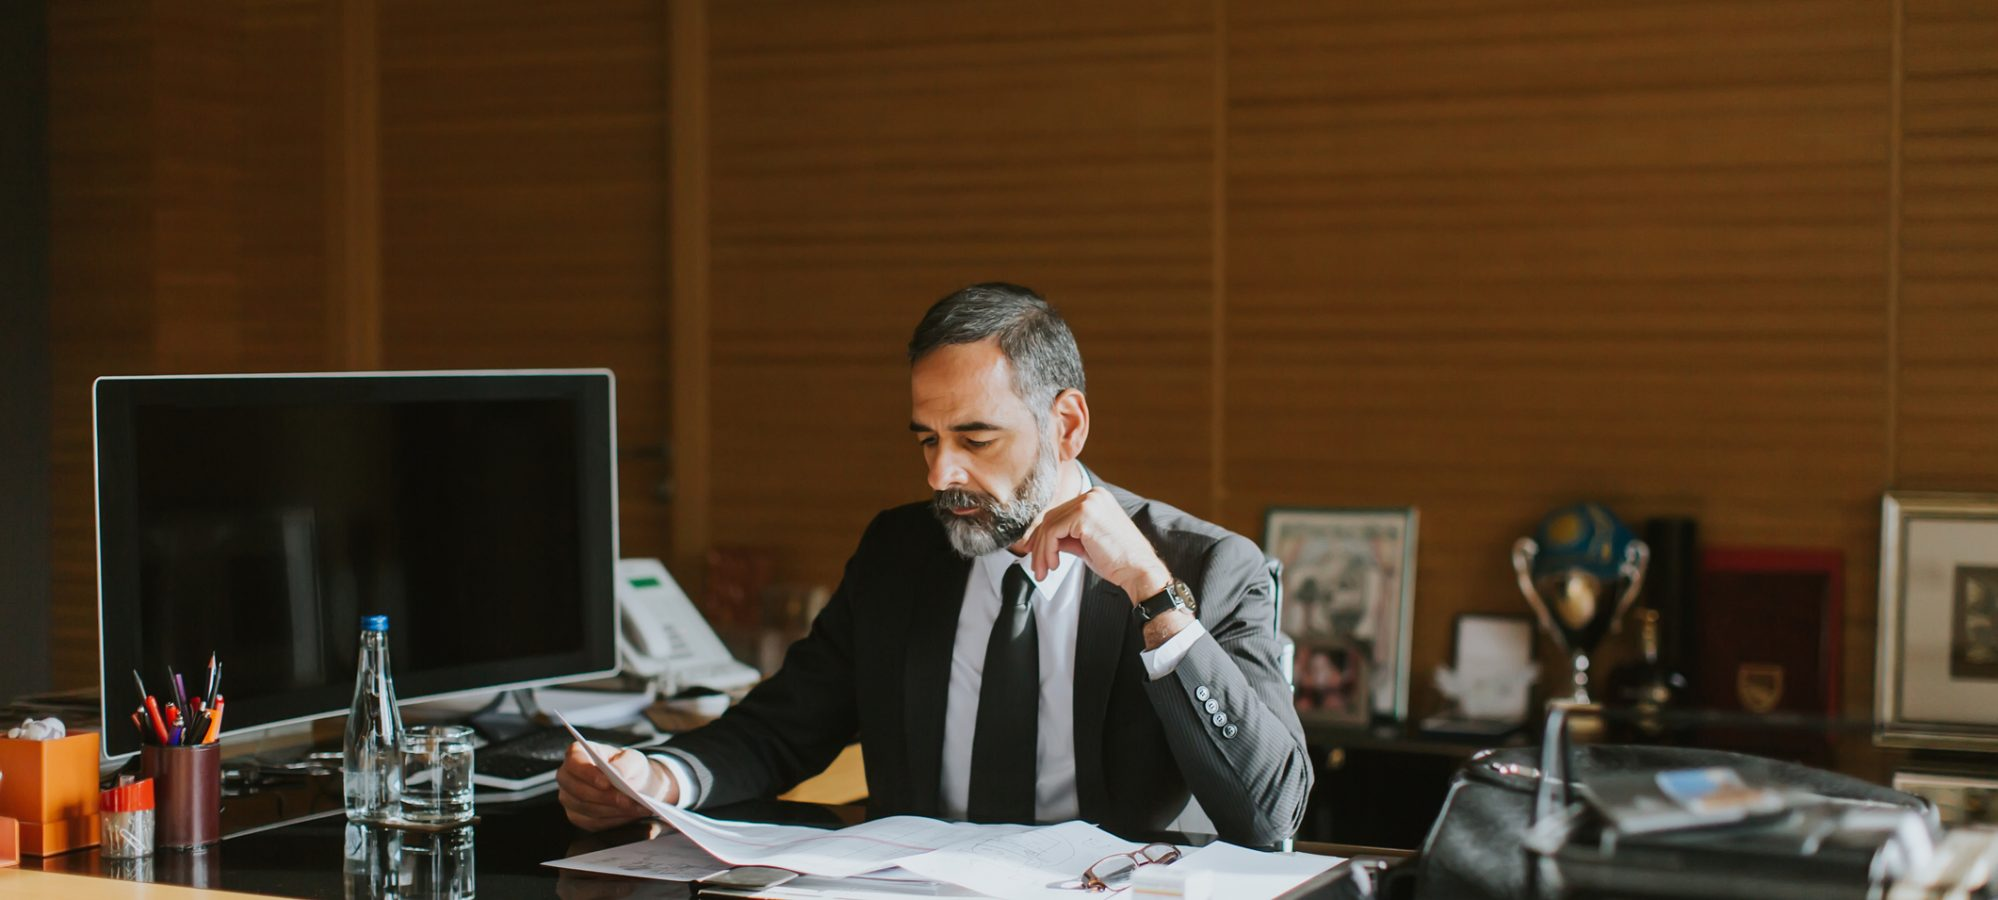 Image of business man working at desk in office